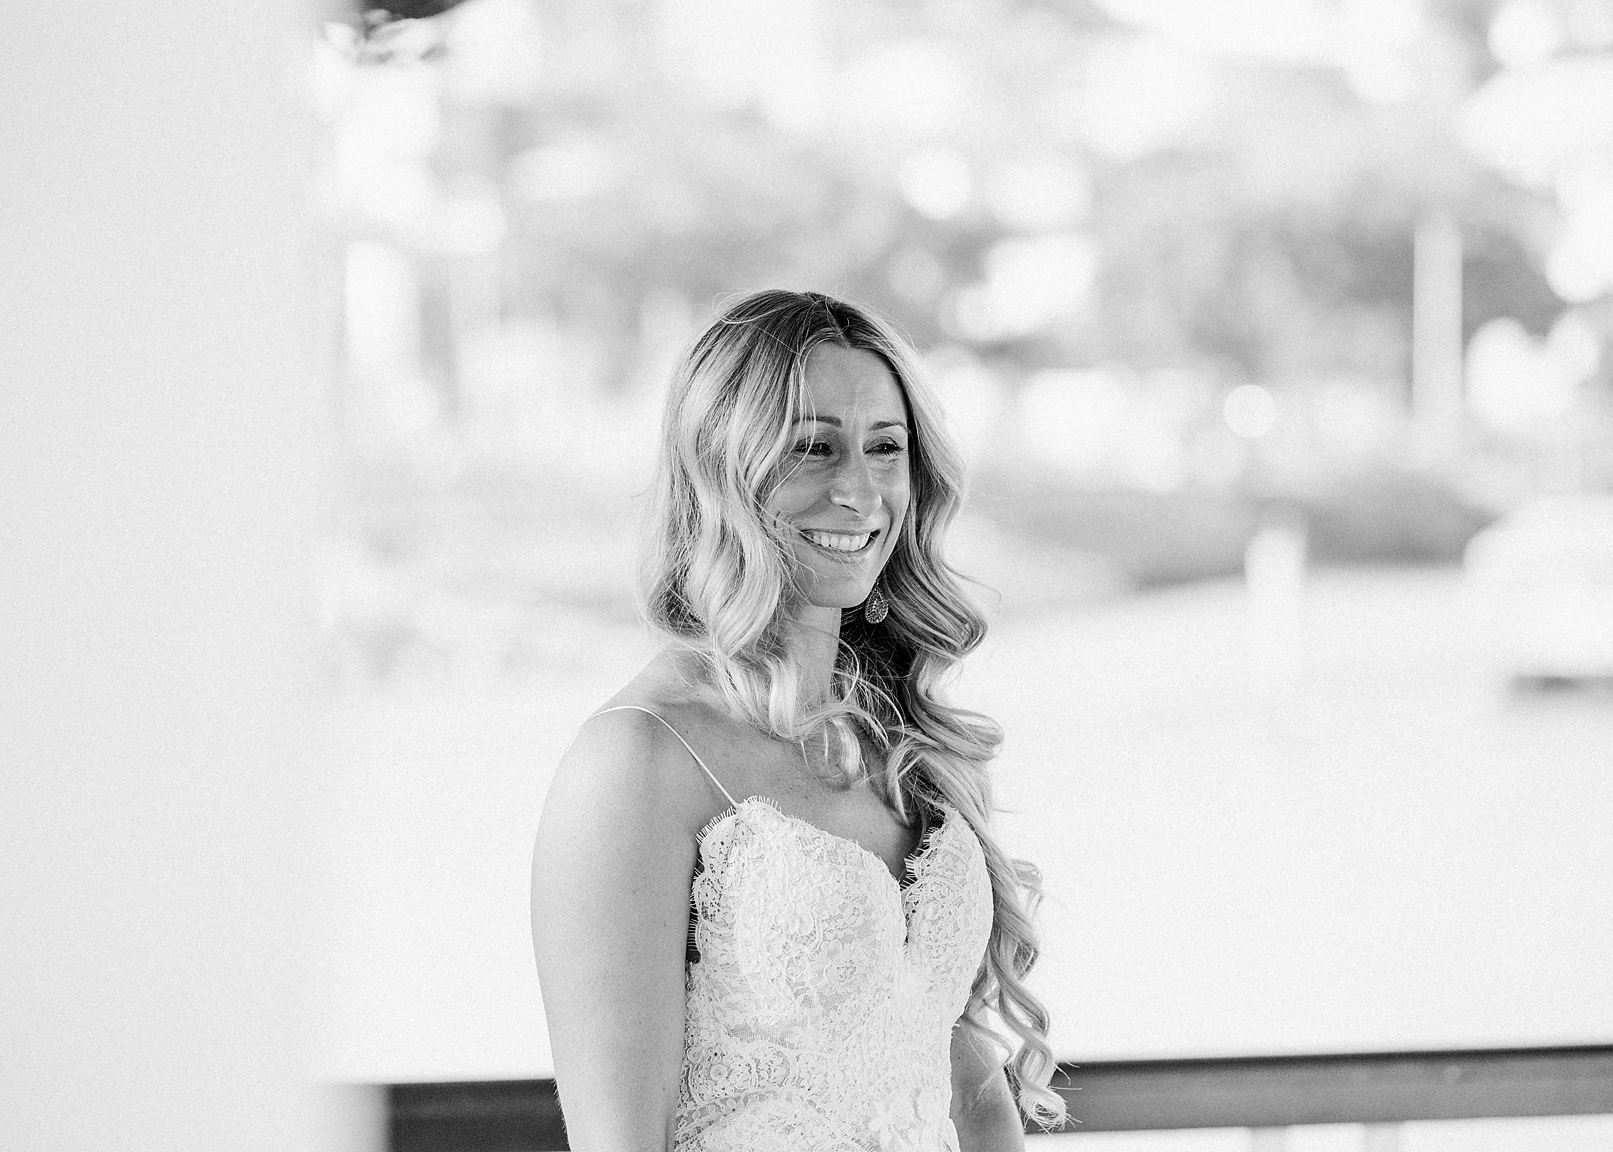 Capturing the emotion at Greg & Claudine's vow renewal. (Image by Poppy & Sage Photography.)